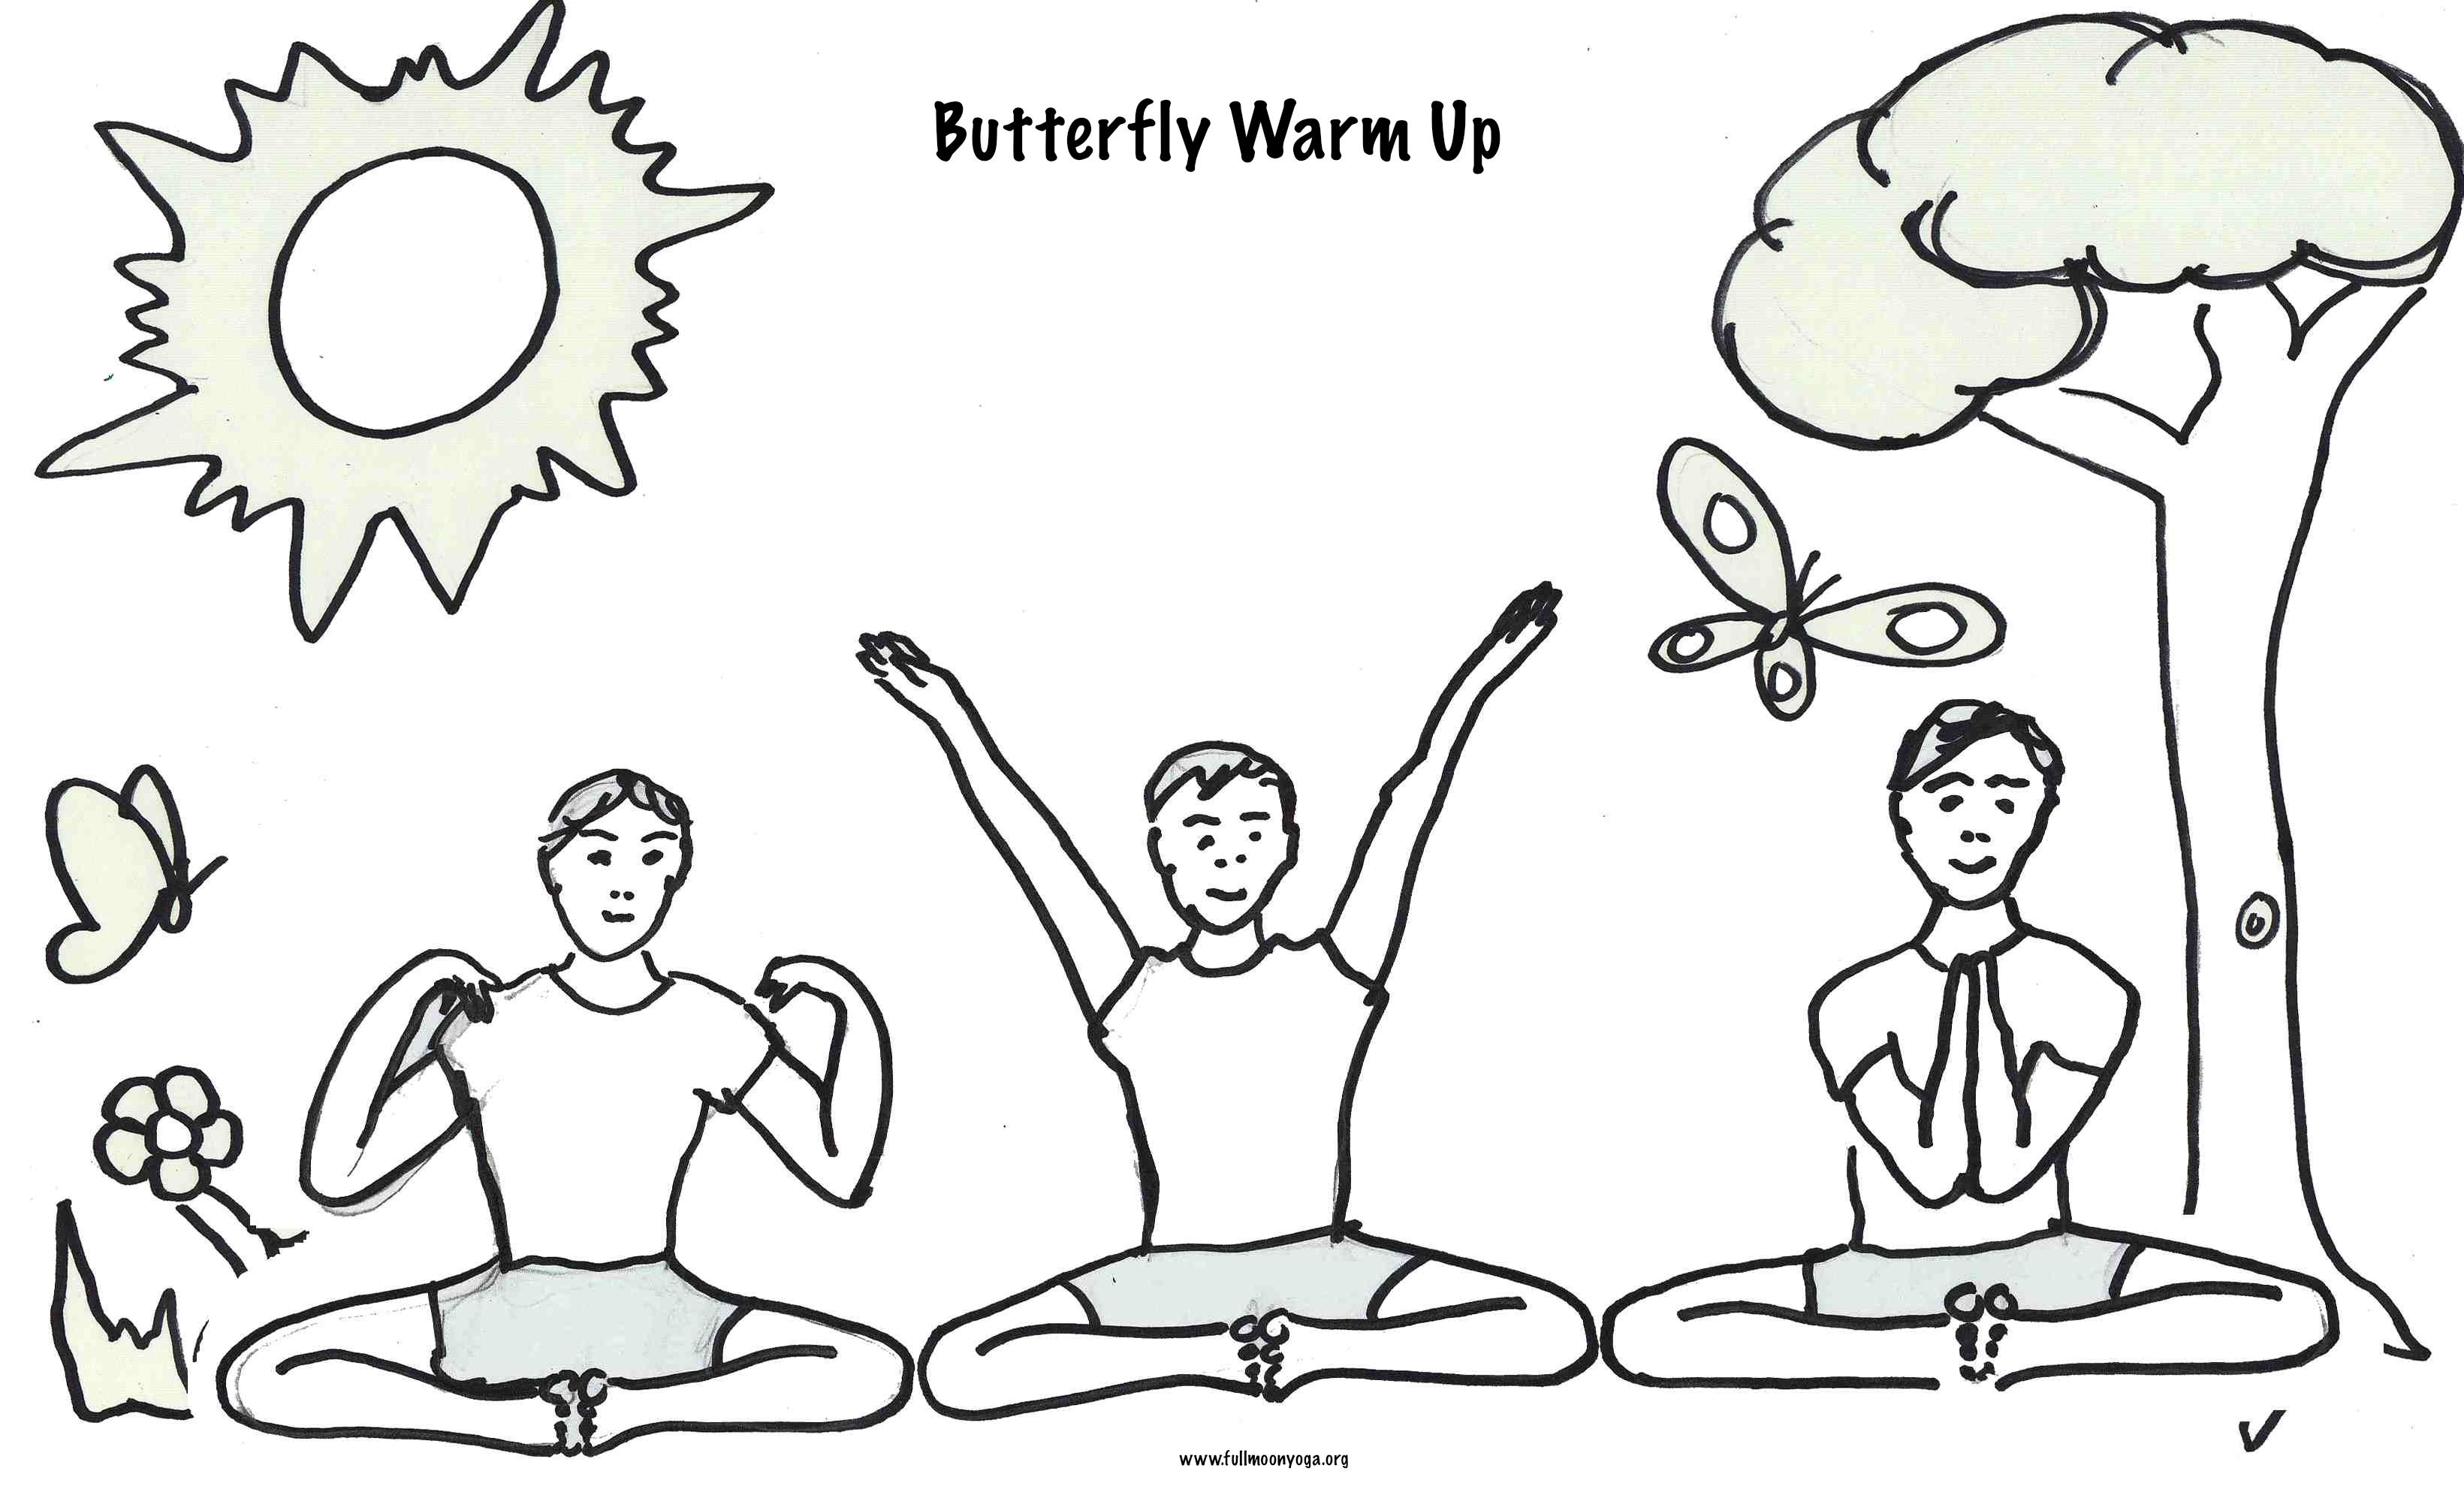 Butterfly Warm Up For Instruction Please Visit Http Full Moon Yoga Com Color Mini Sequences Jp Carousel Childrens Yoga Yoga For Kids Mindfulness For Kids